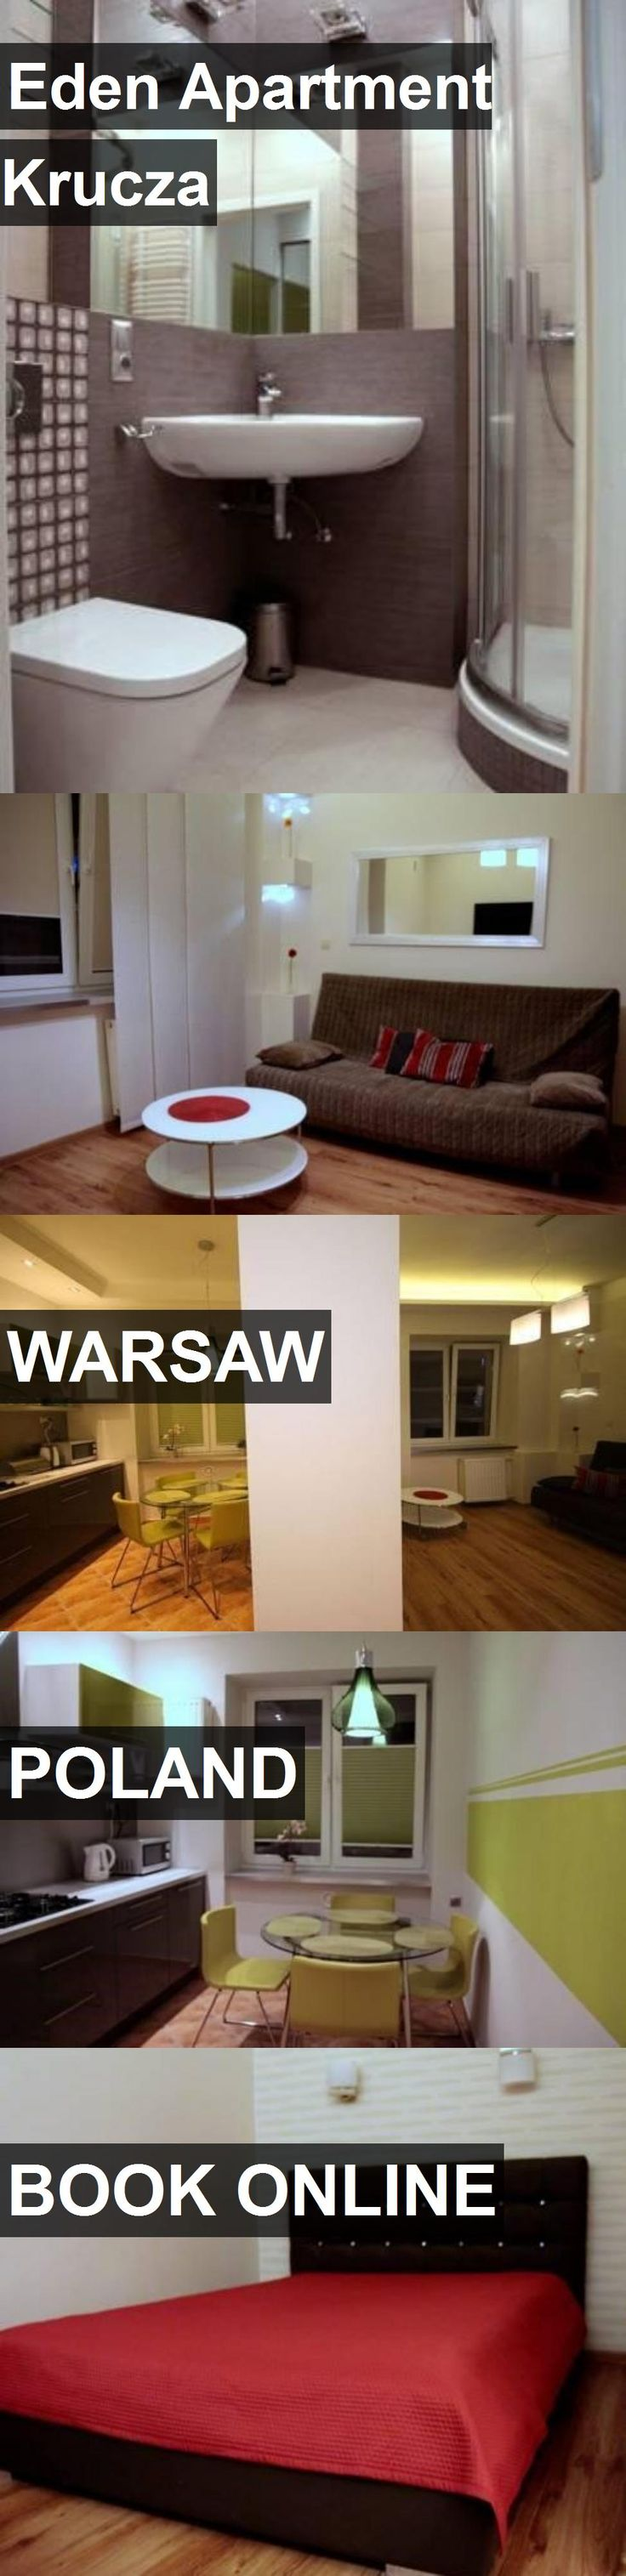 Hotel Eden Apartment Krucza in Warsaw, Poland. For more information, photos, reviews and best prices please follow the link. #Poland #Warsaw #EdenApartmentKrucza #hotel #travel #vacation